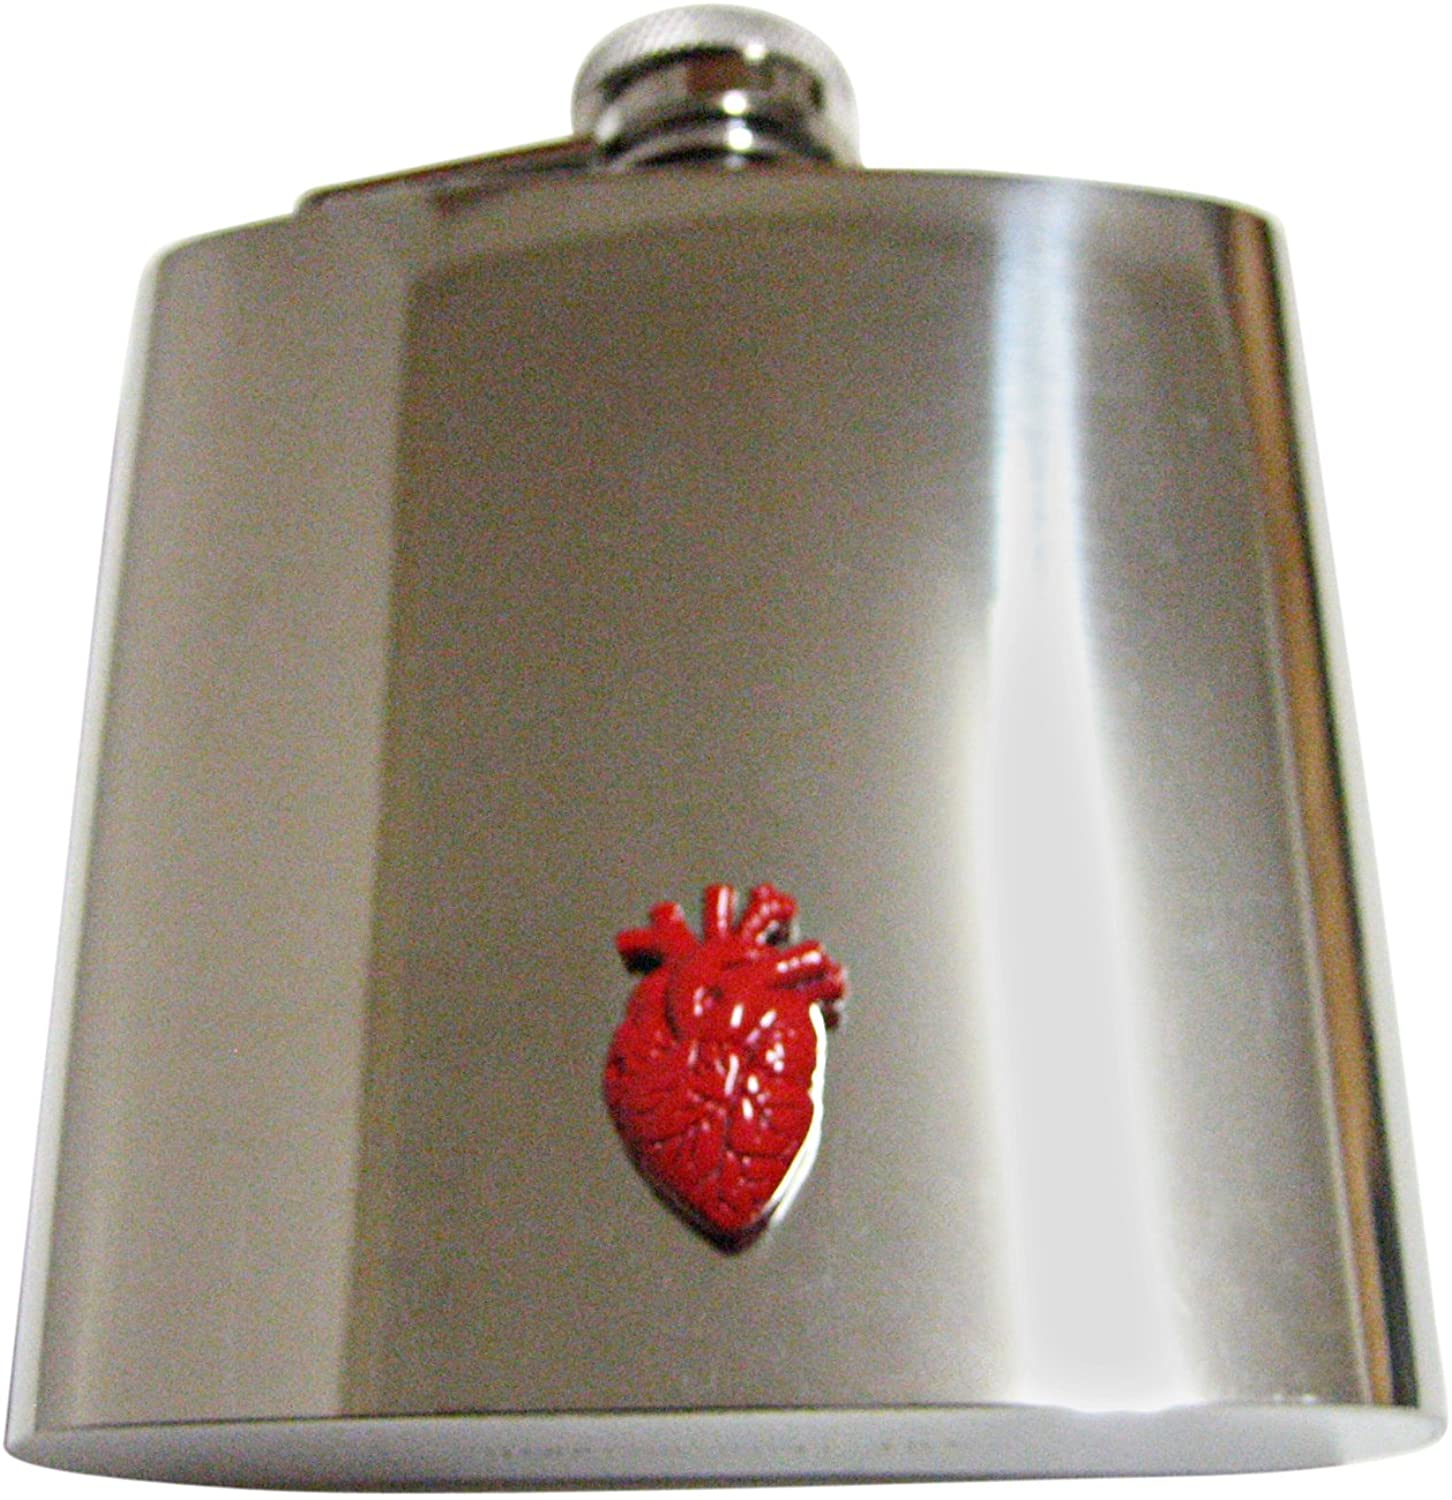 Red Anatomical Heart 6 Oz. Stainless Steel Flask